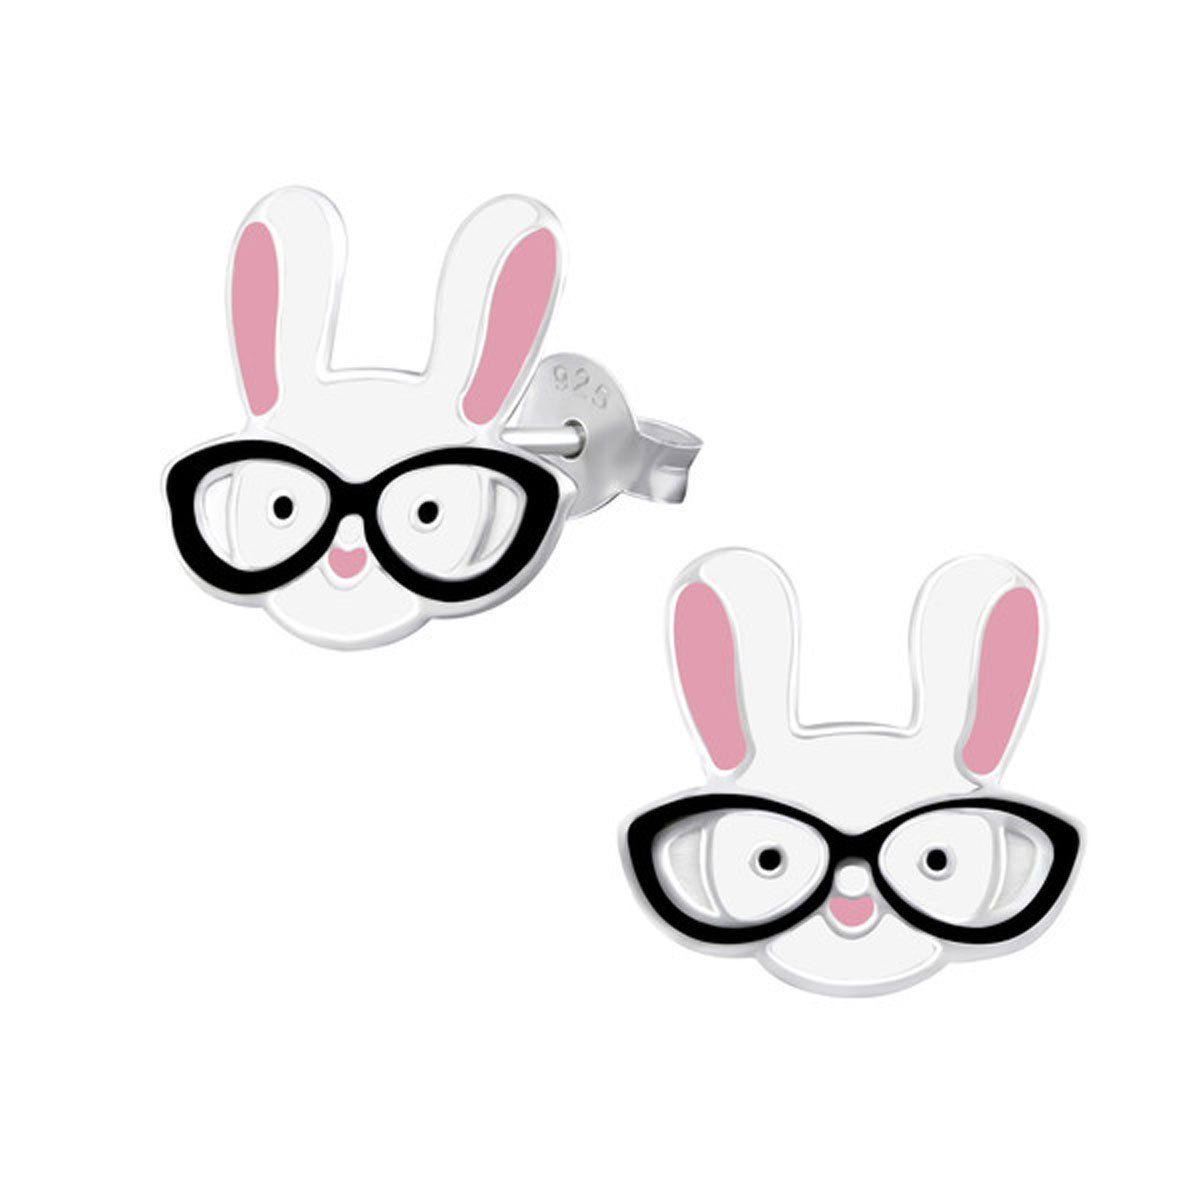 Cute White Rabbit Glasses Studs Earrings Easter Nickle Free Girls Stering Silver 925 (E31982)